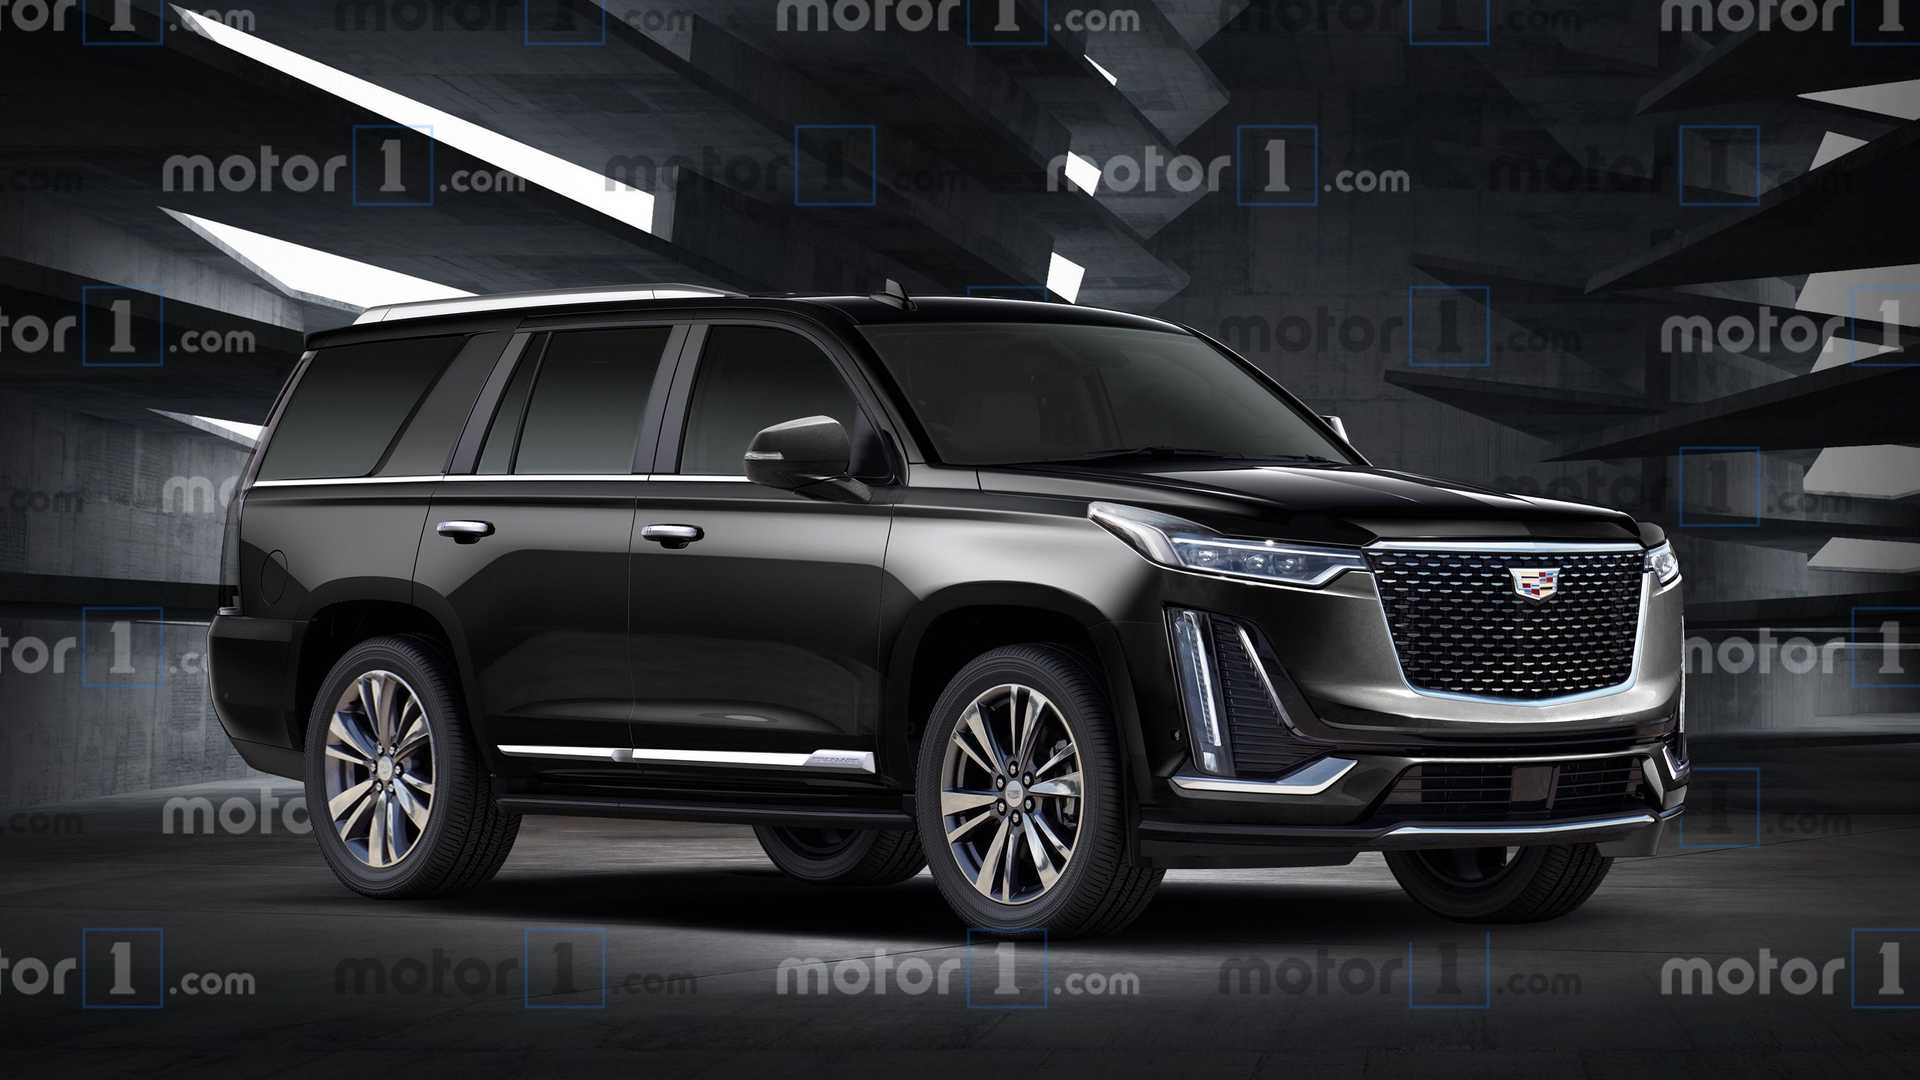 A New Image On The Electric Cadillac Escalade The Next